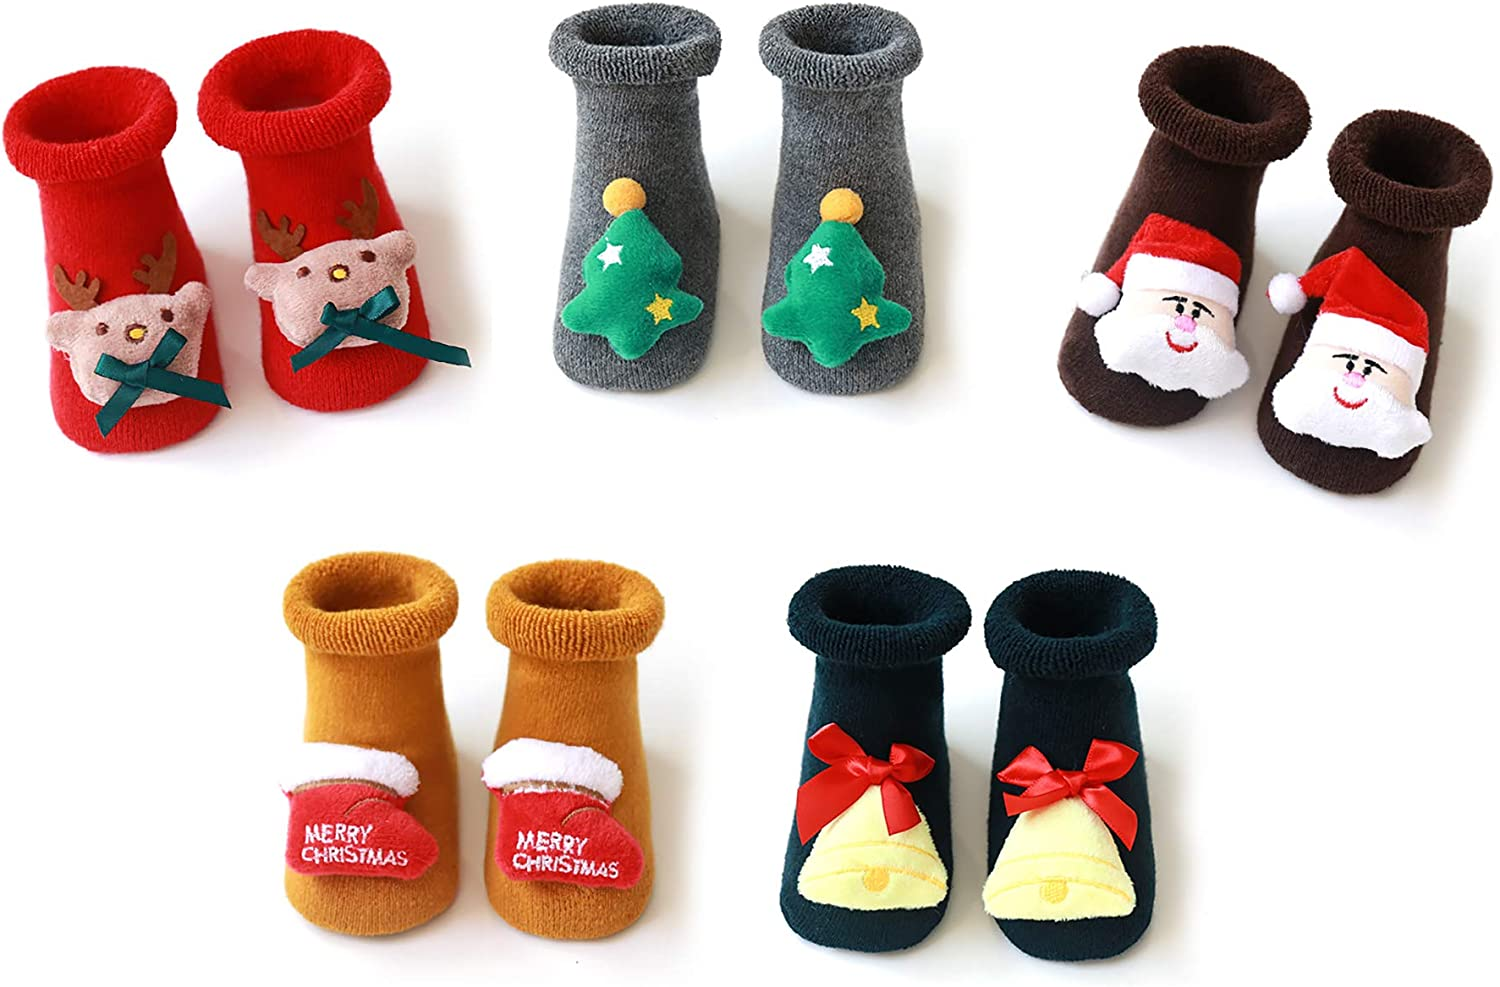 5-Pack 3D Christmas Cartoon Cotton Baby Socks Unisex Infant Toddler Terry Socks With Non Skid Socks For 0-36 Months